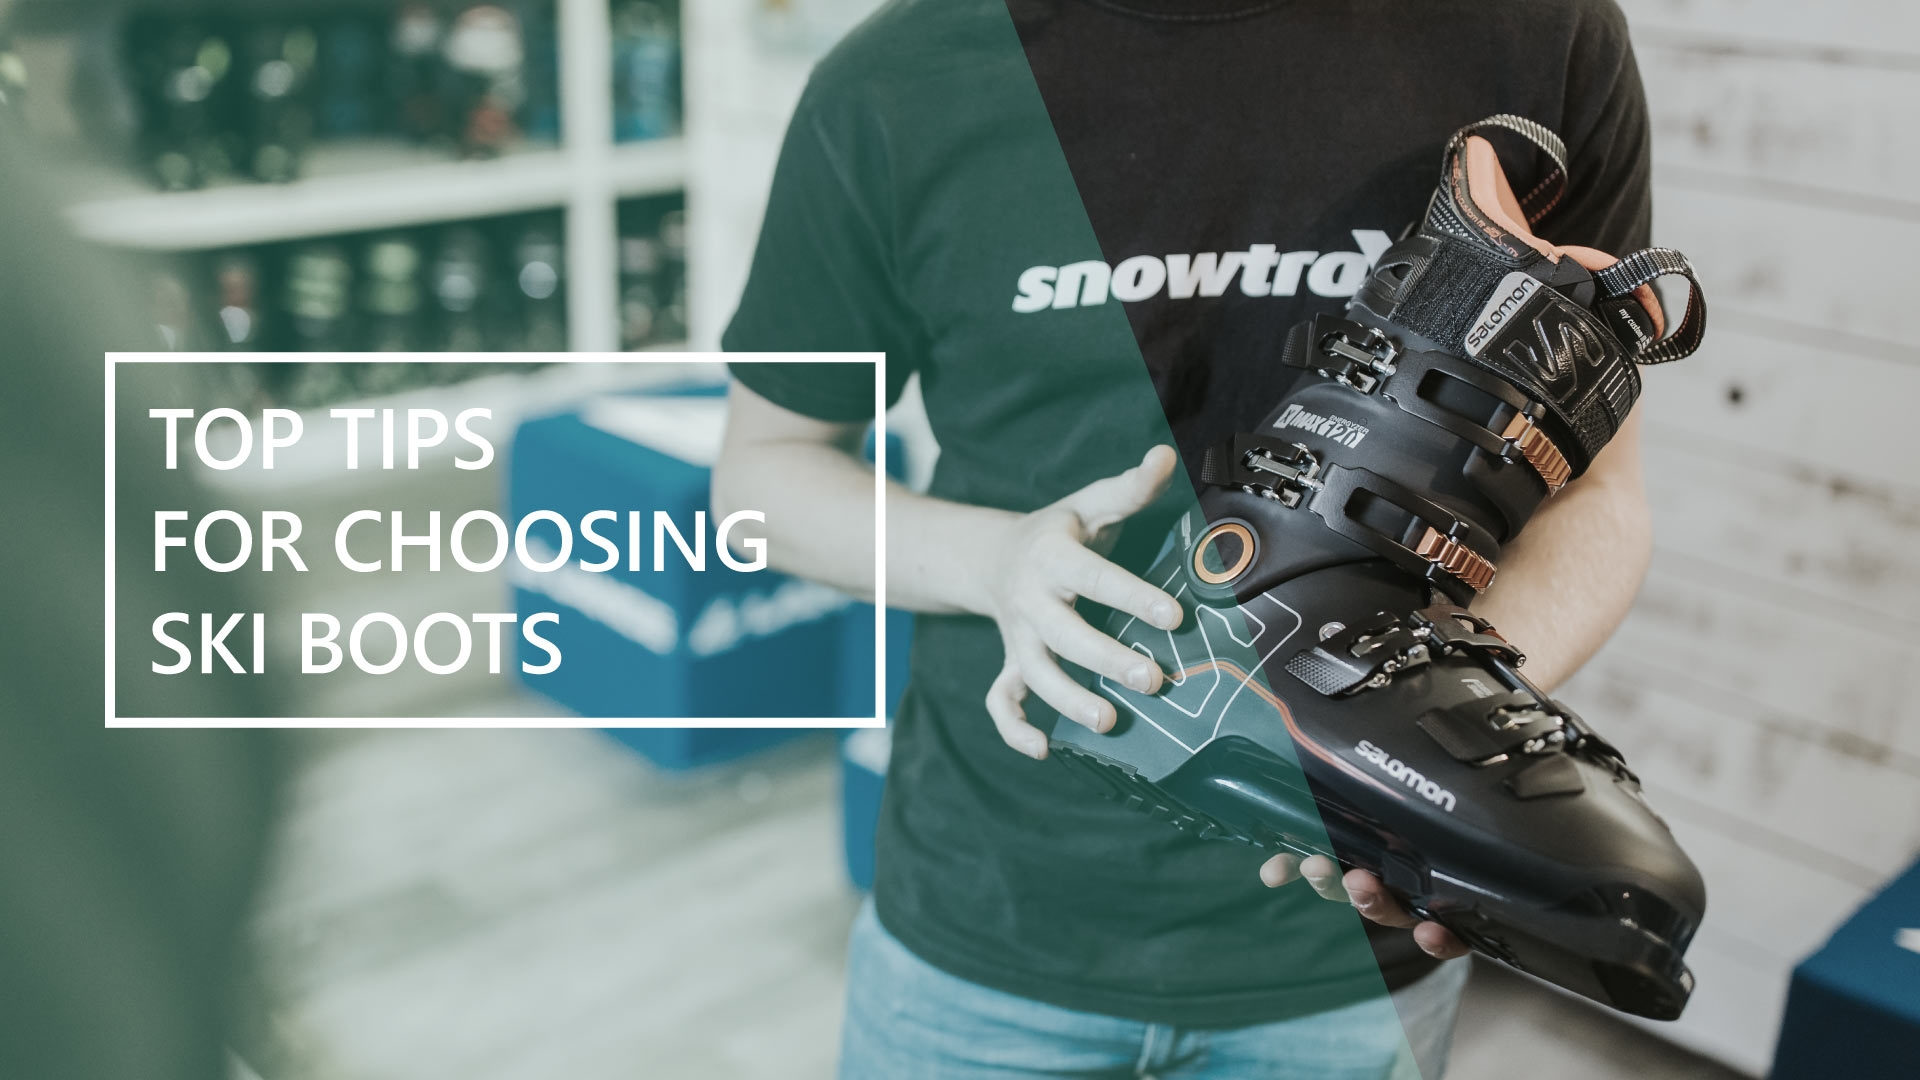 Top 5 Tips For Choosing Ski Boots